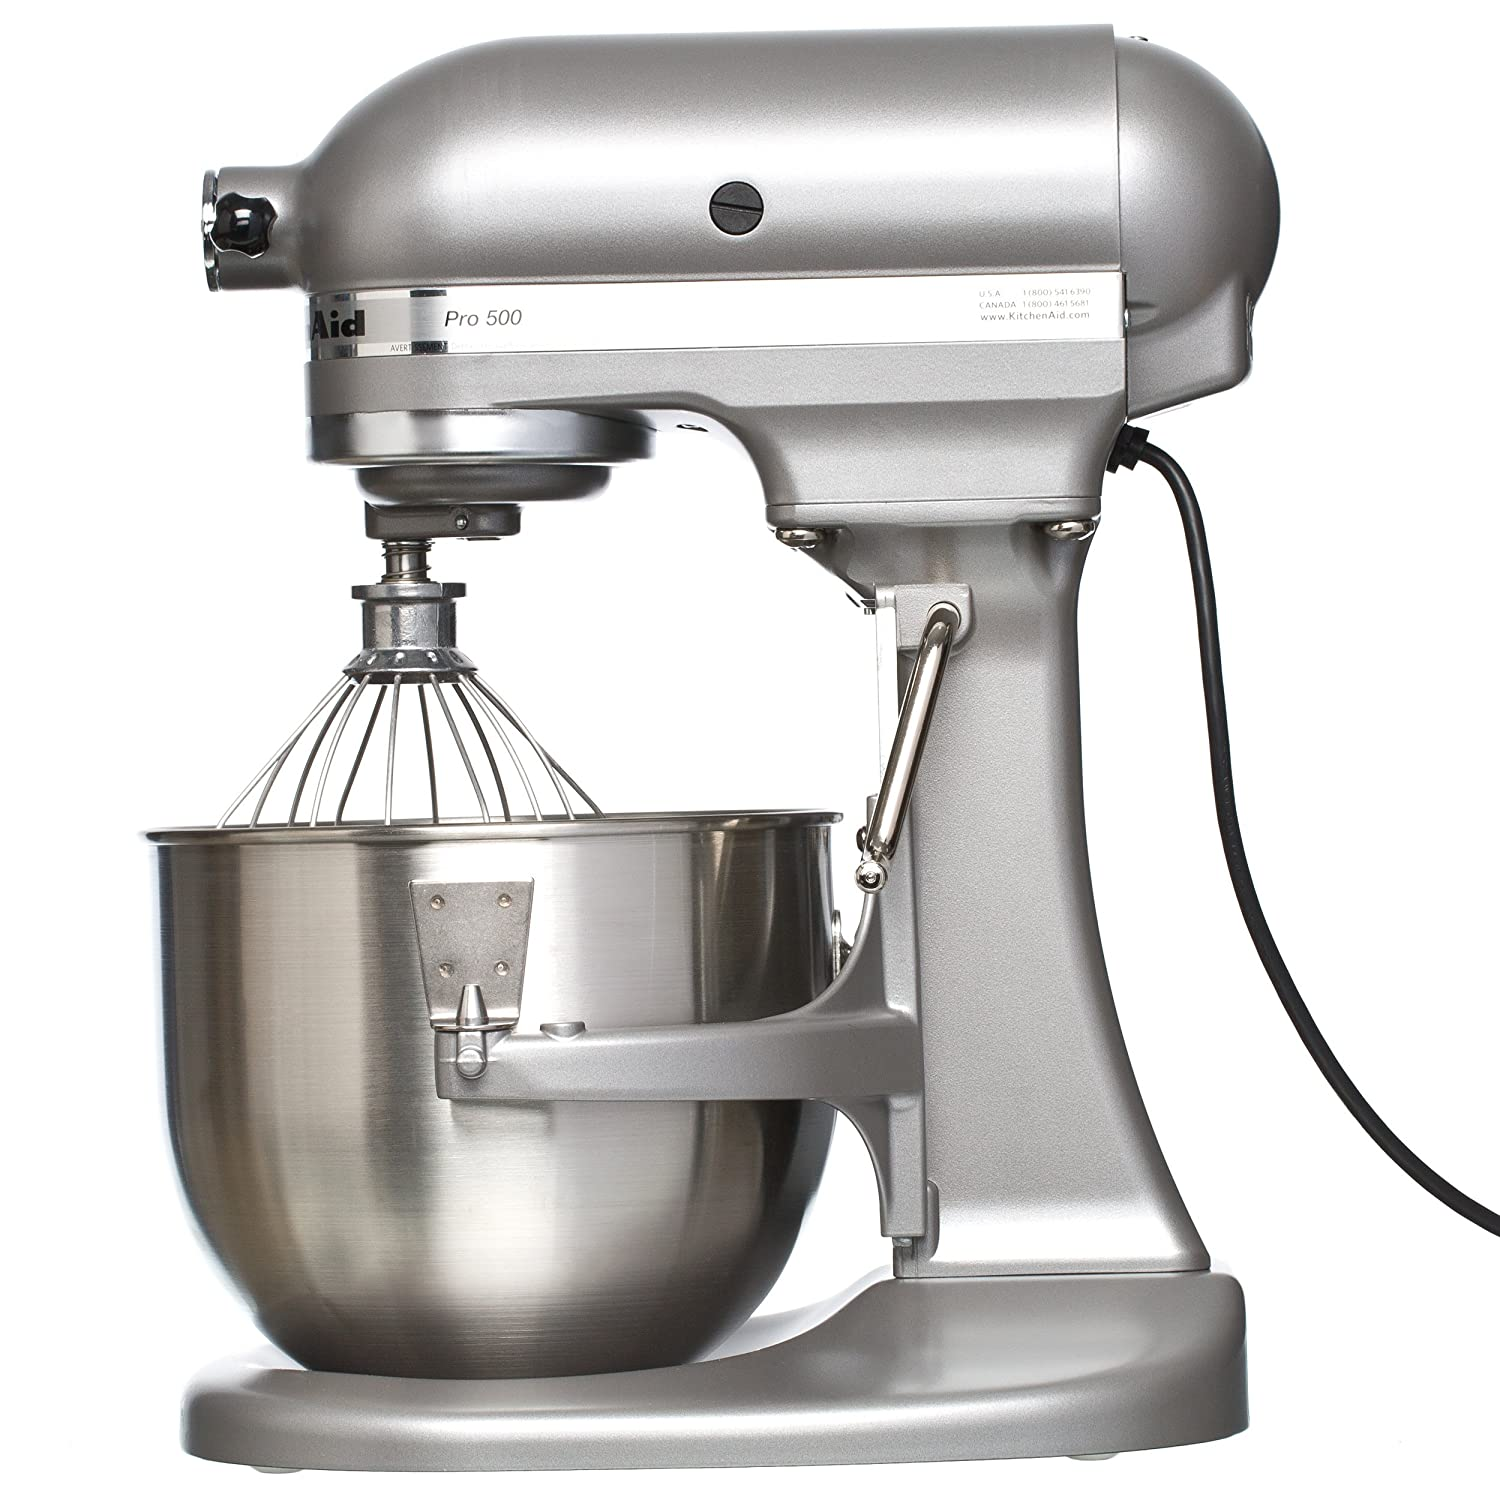 Amazon.com: KitchenAid PRO 500 Series 5-Quart Lift Style Stand Mixer ...